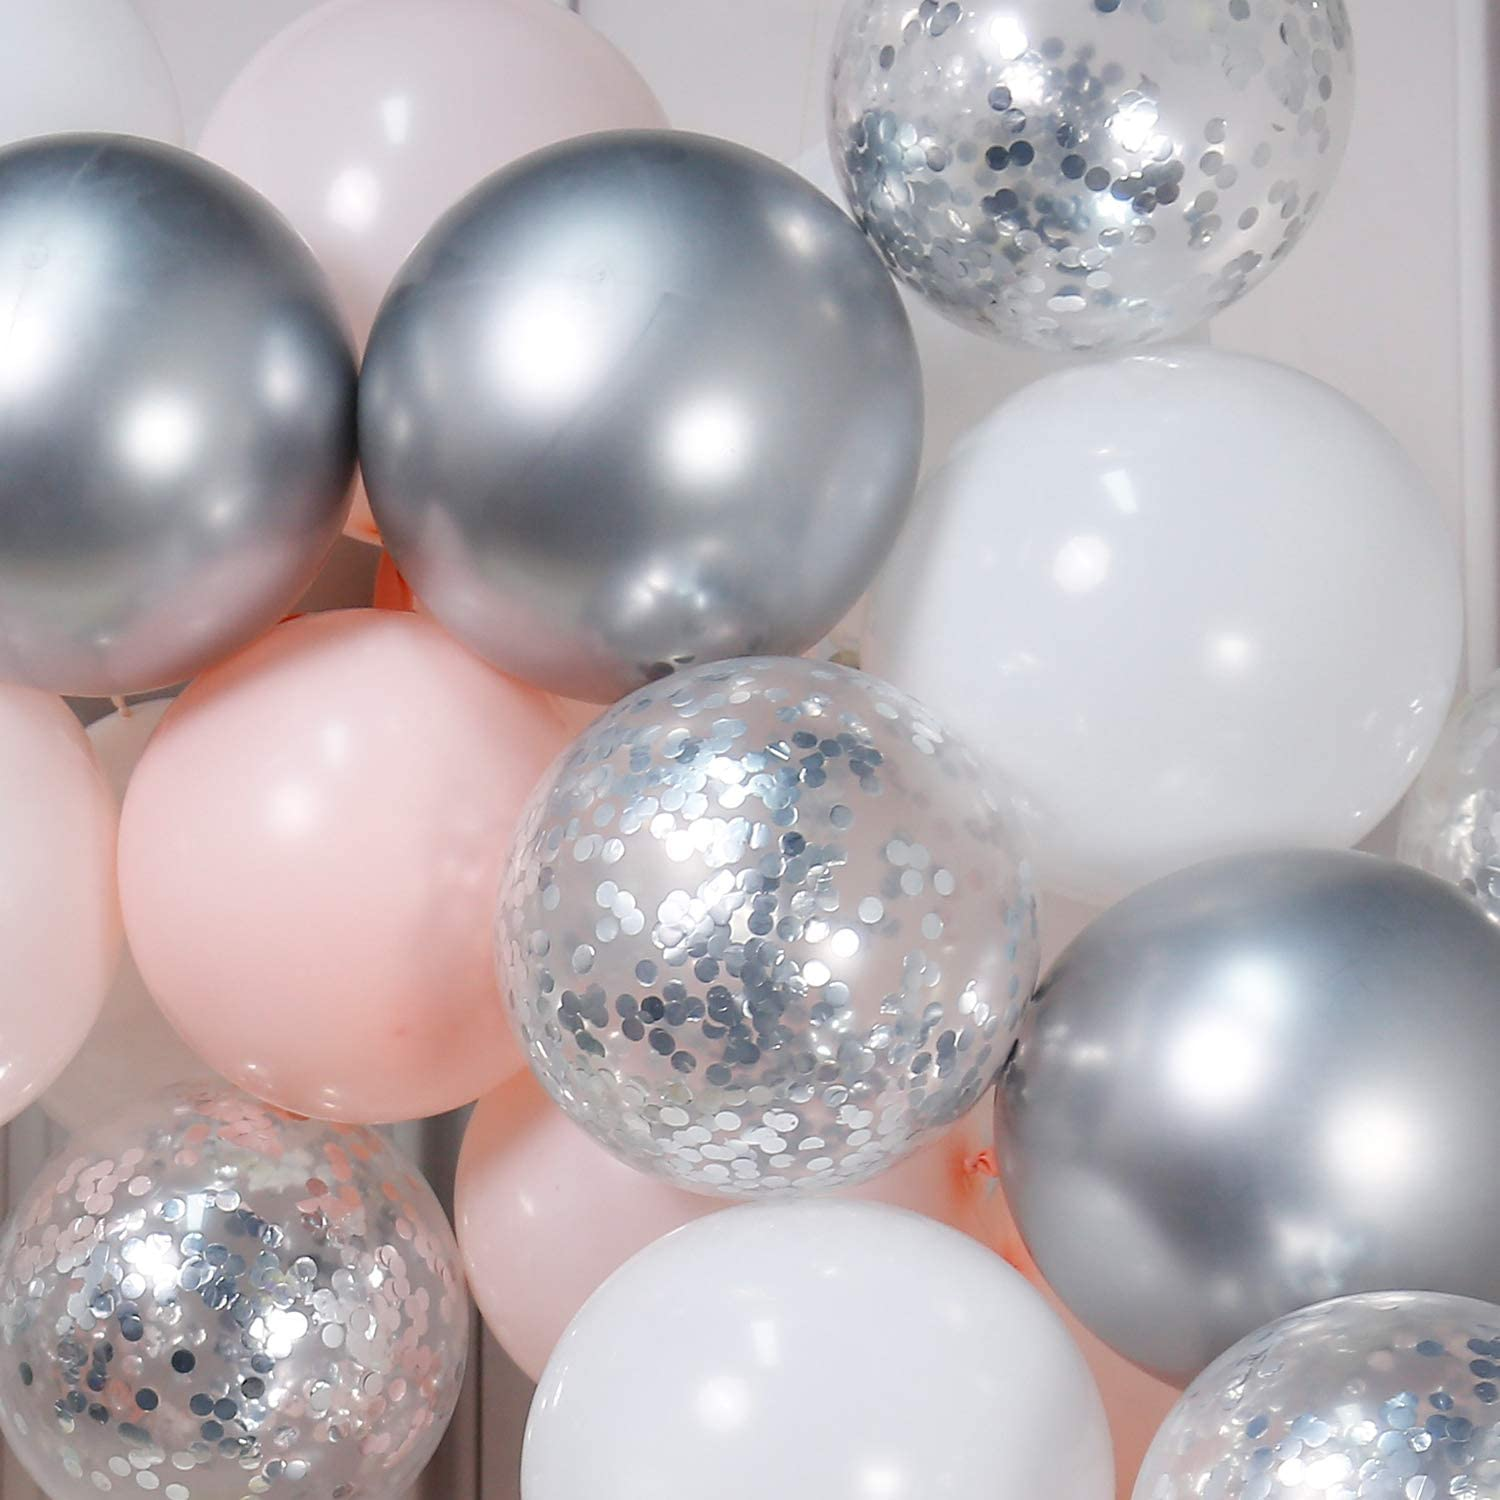 White Balloons Pink and Silver Wedding Party Metallic Balloons PartyWoo Pink Balloons Pink Silver and White Balloons Pack of Pale Pink Latex Balloons Confetti Balloons for Pink Silver Birthday